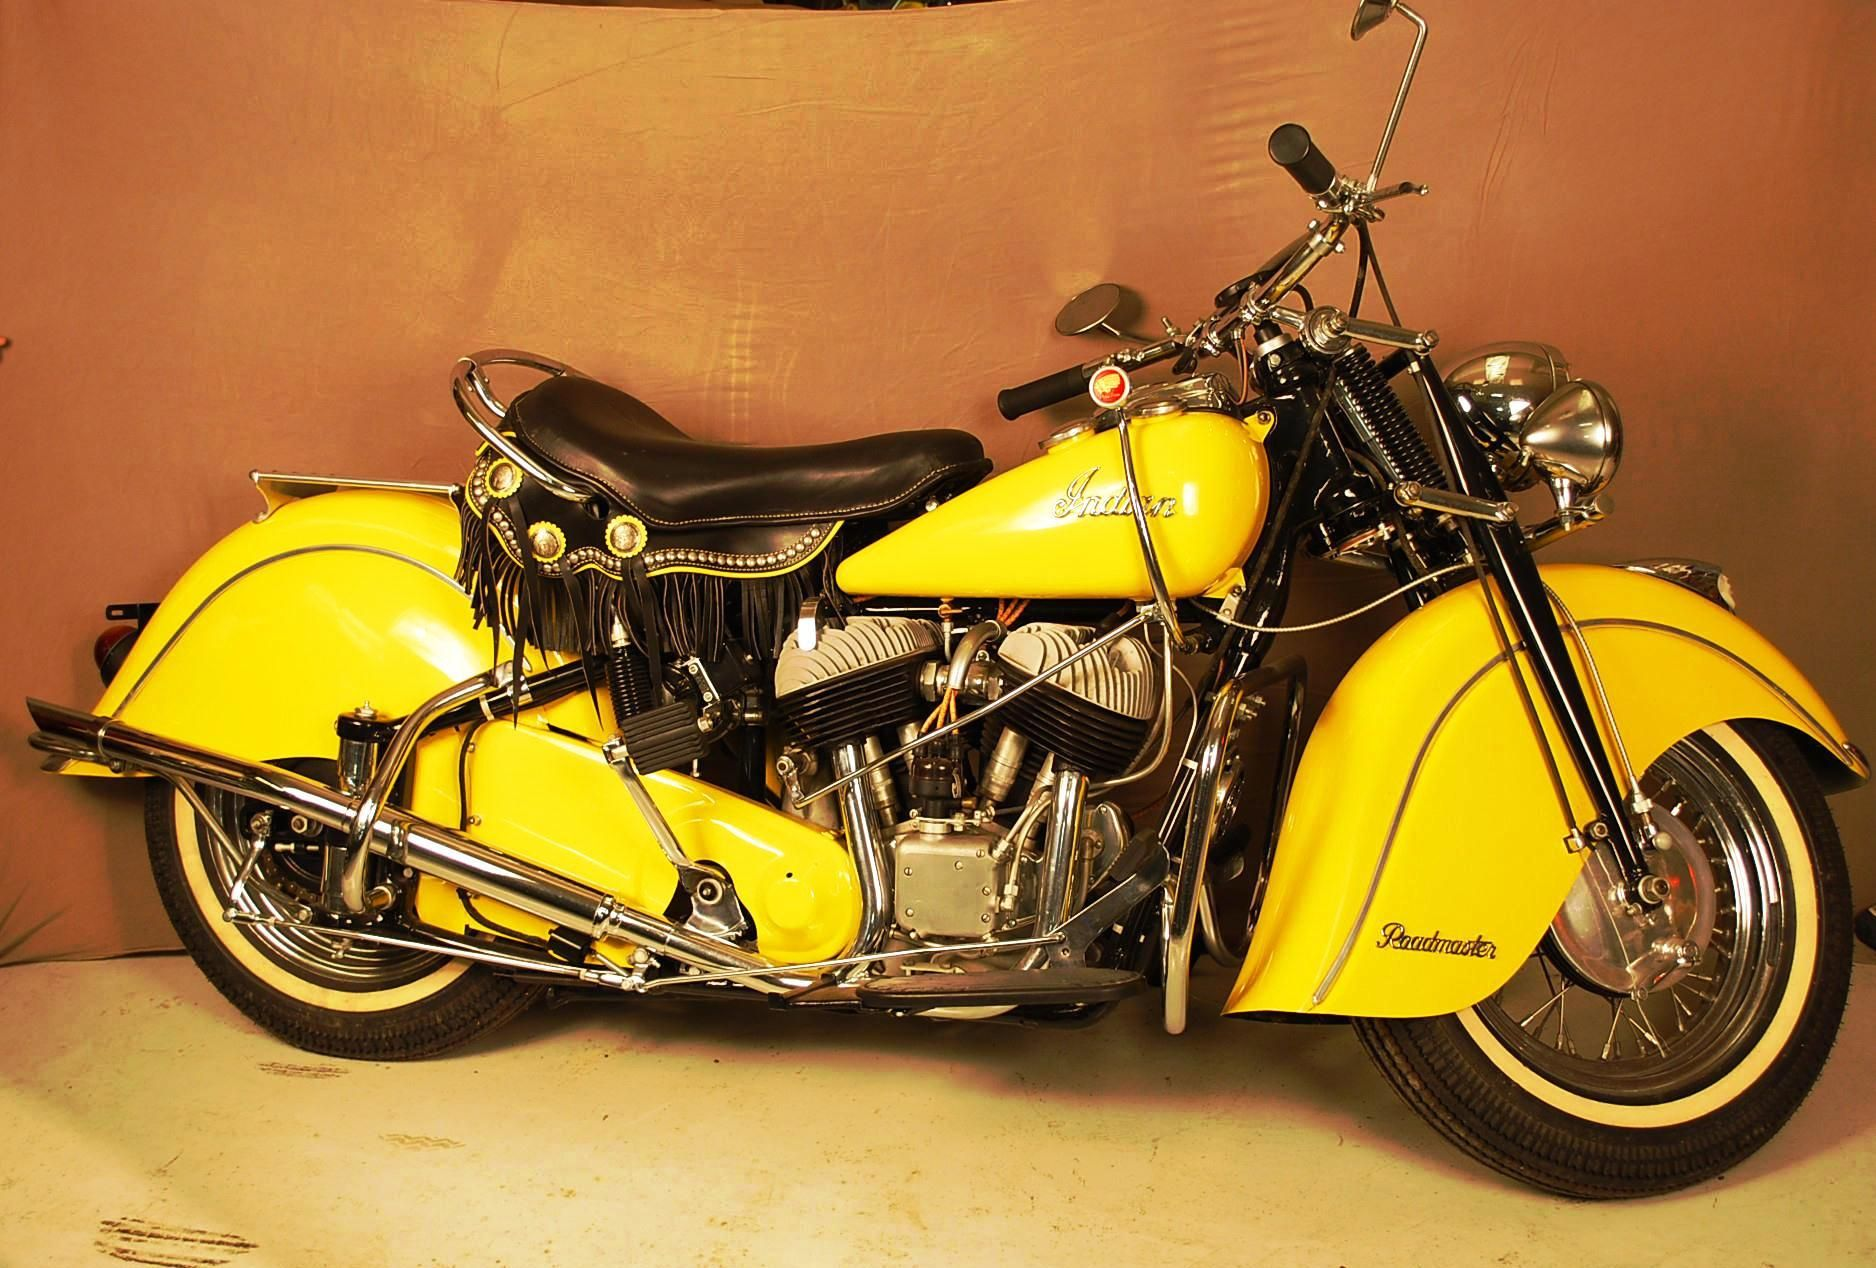 This yellow 1948 Indian Chief Roadmaster motorcycle sold